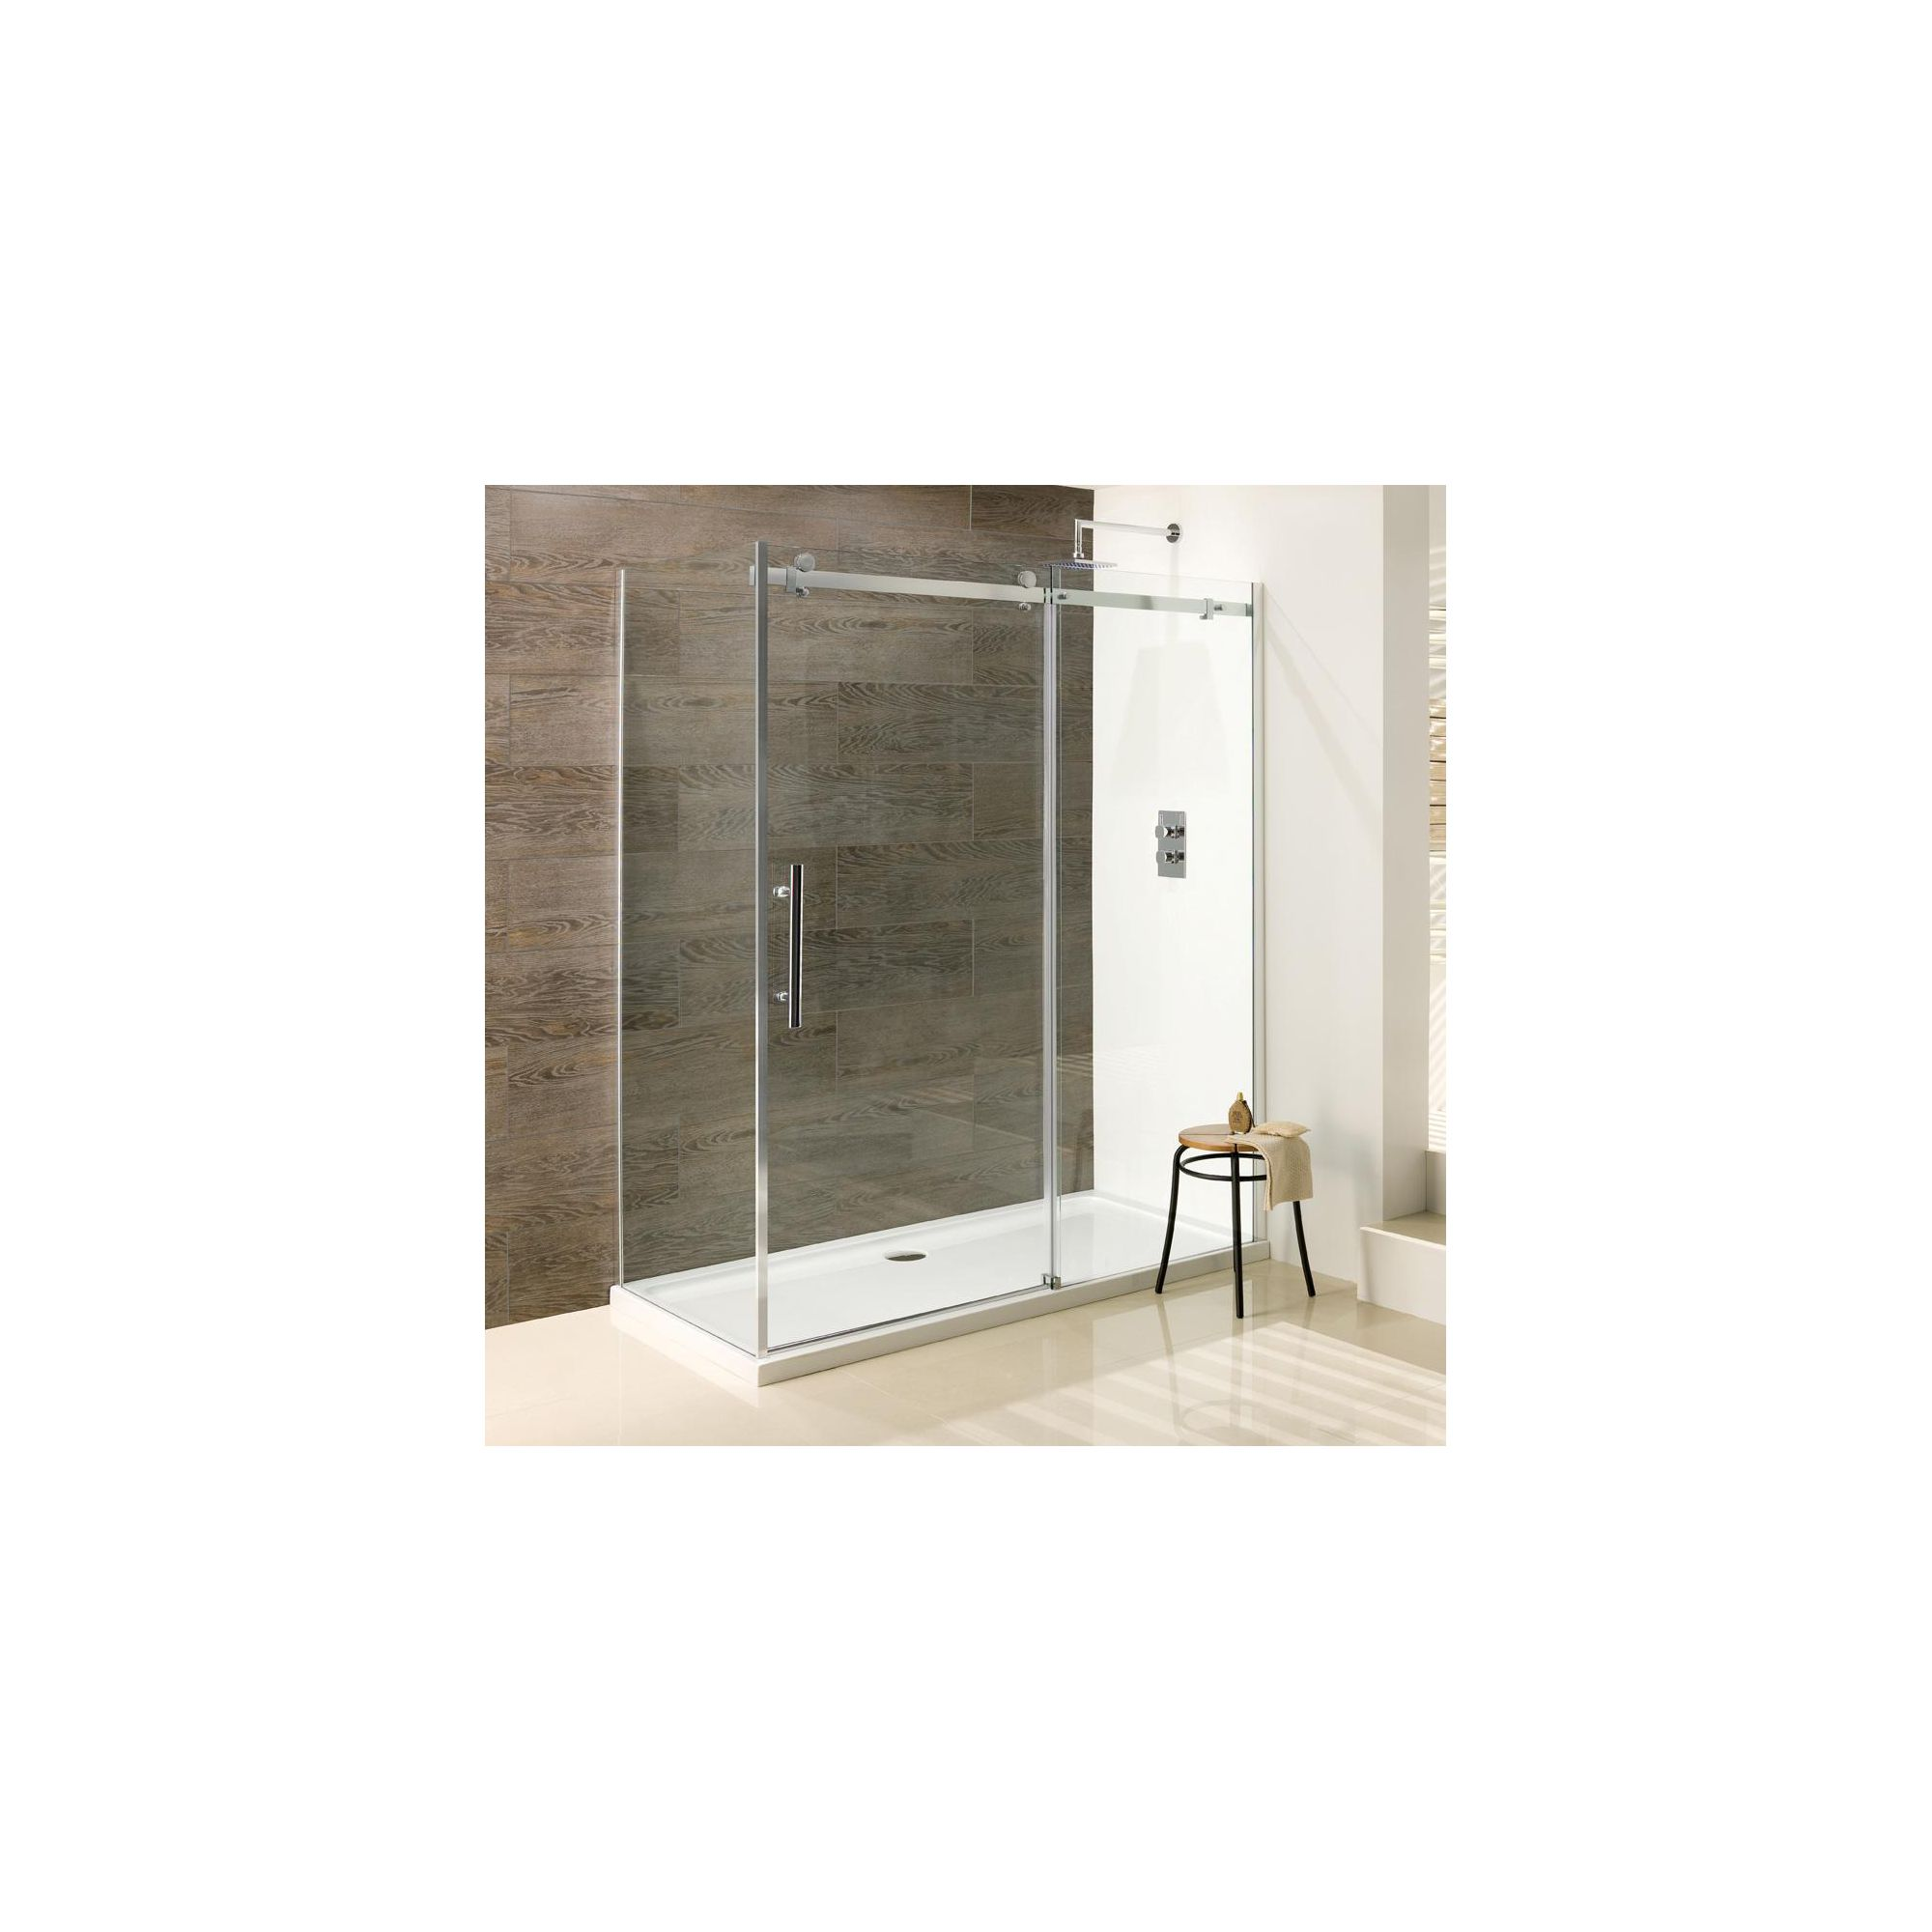 Duchy Deluxe Silver Sliding Door Shower Enclosure with Side Panel 1200mm x 800mm (Complete with Tray), 10mm Glass at Tesco Direct